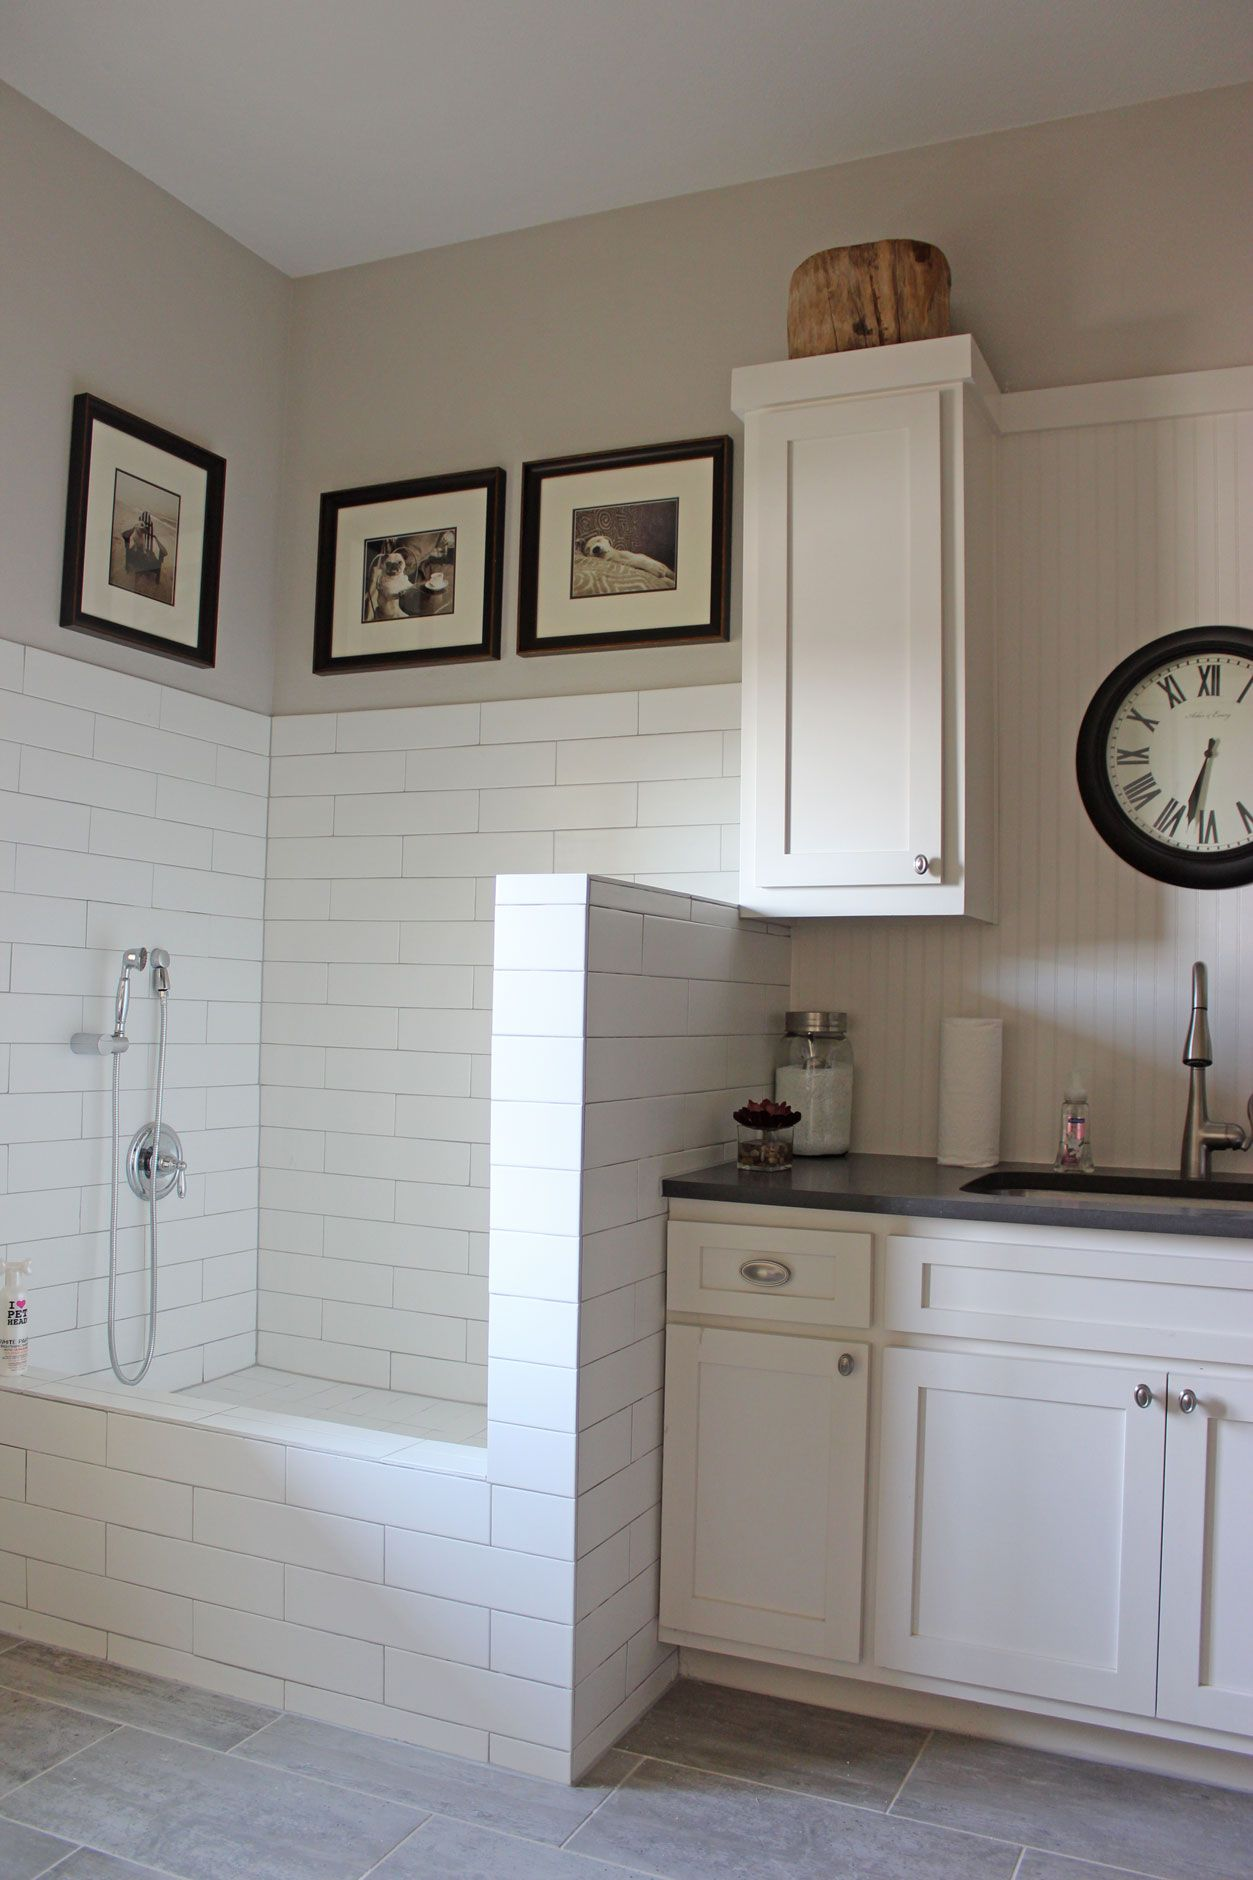 Burrows Cabinets White Painted Laundry Room Cabinets With Tiled Dog Shower Home Pinterest